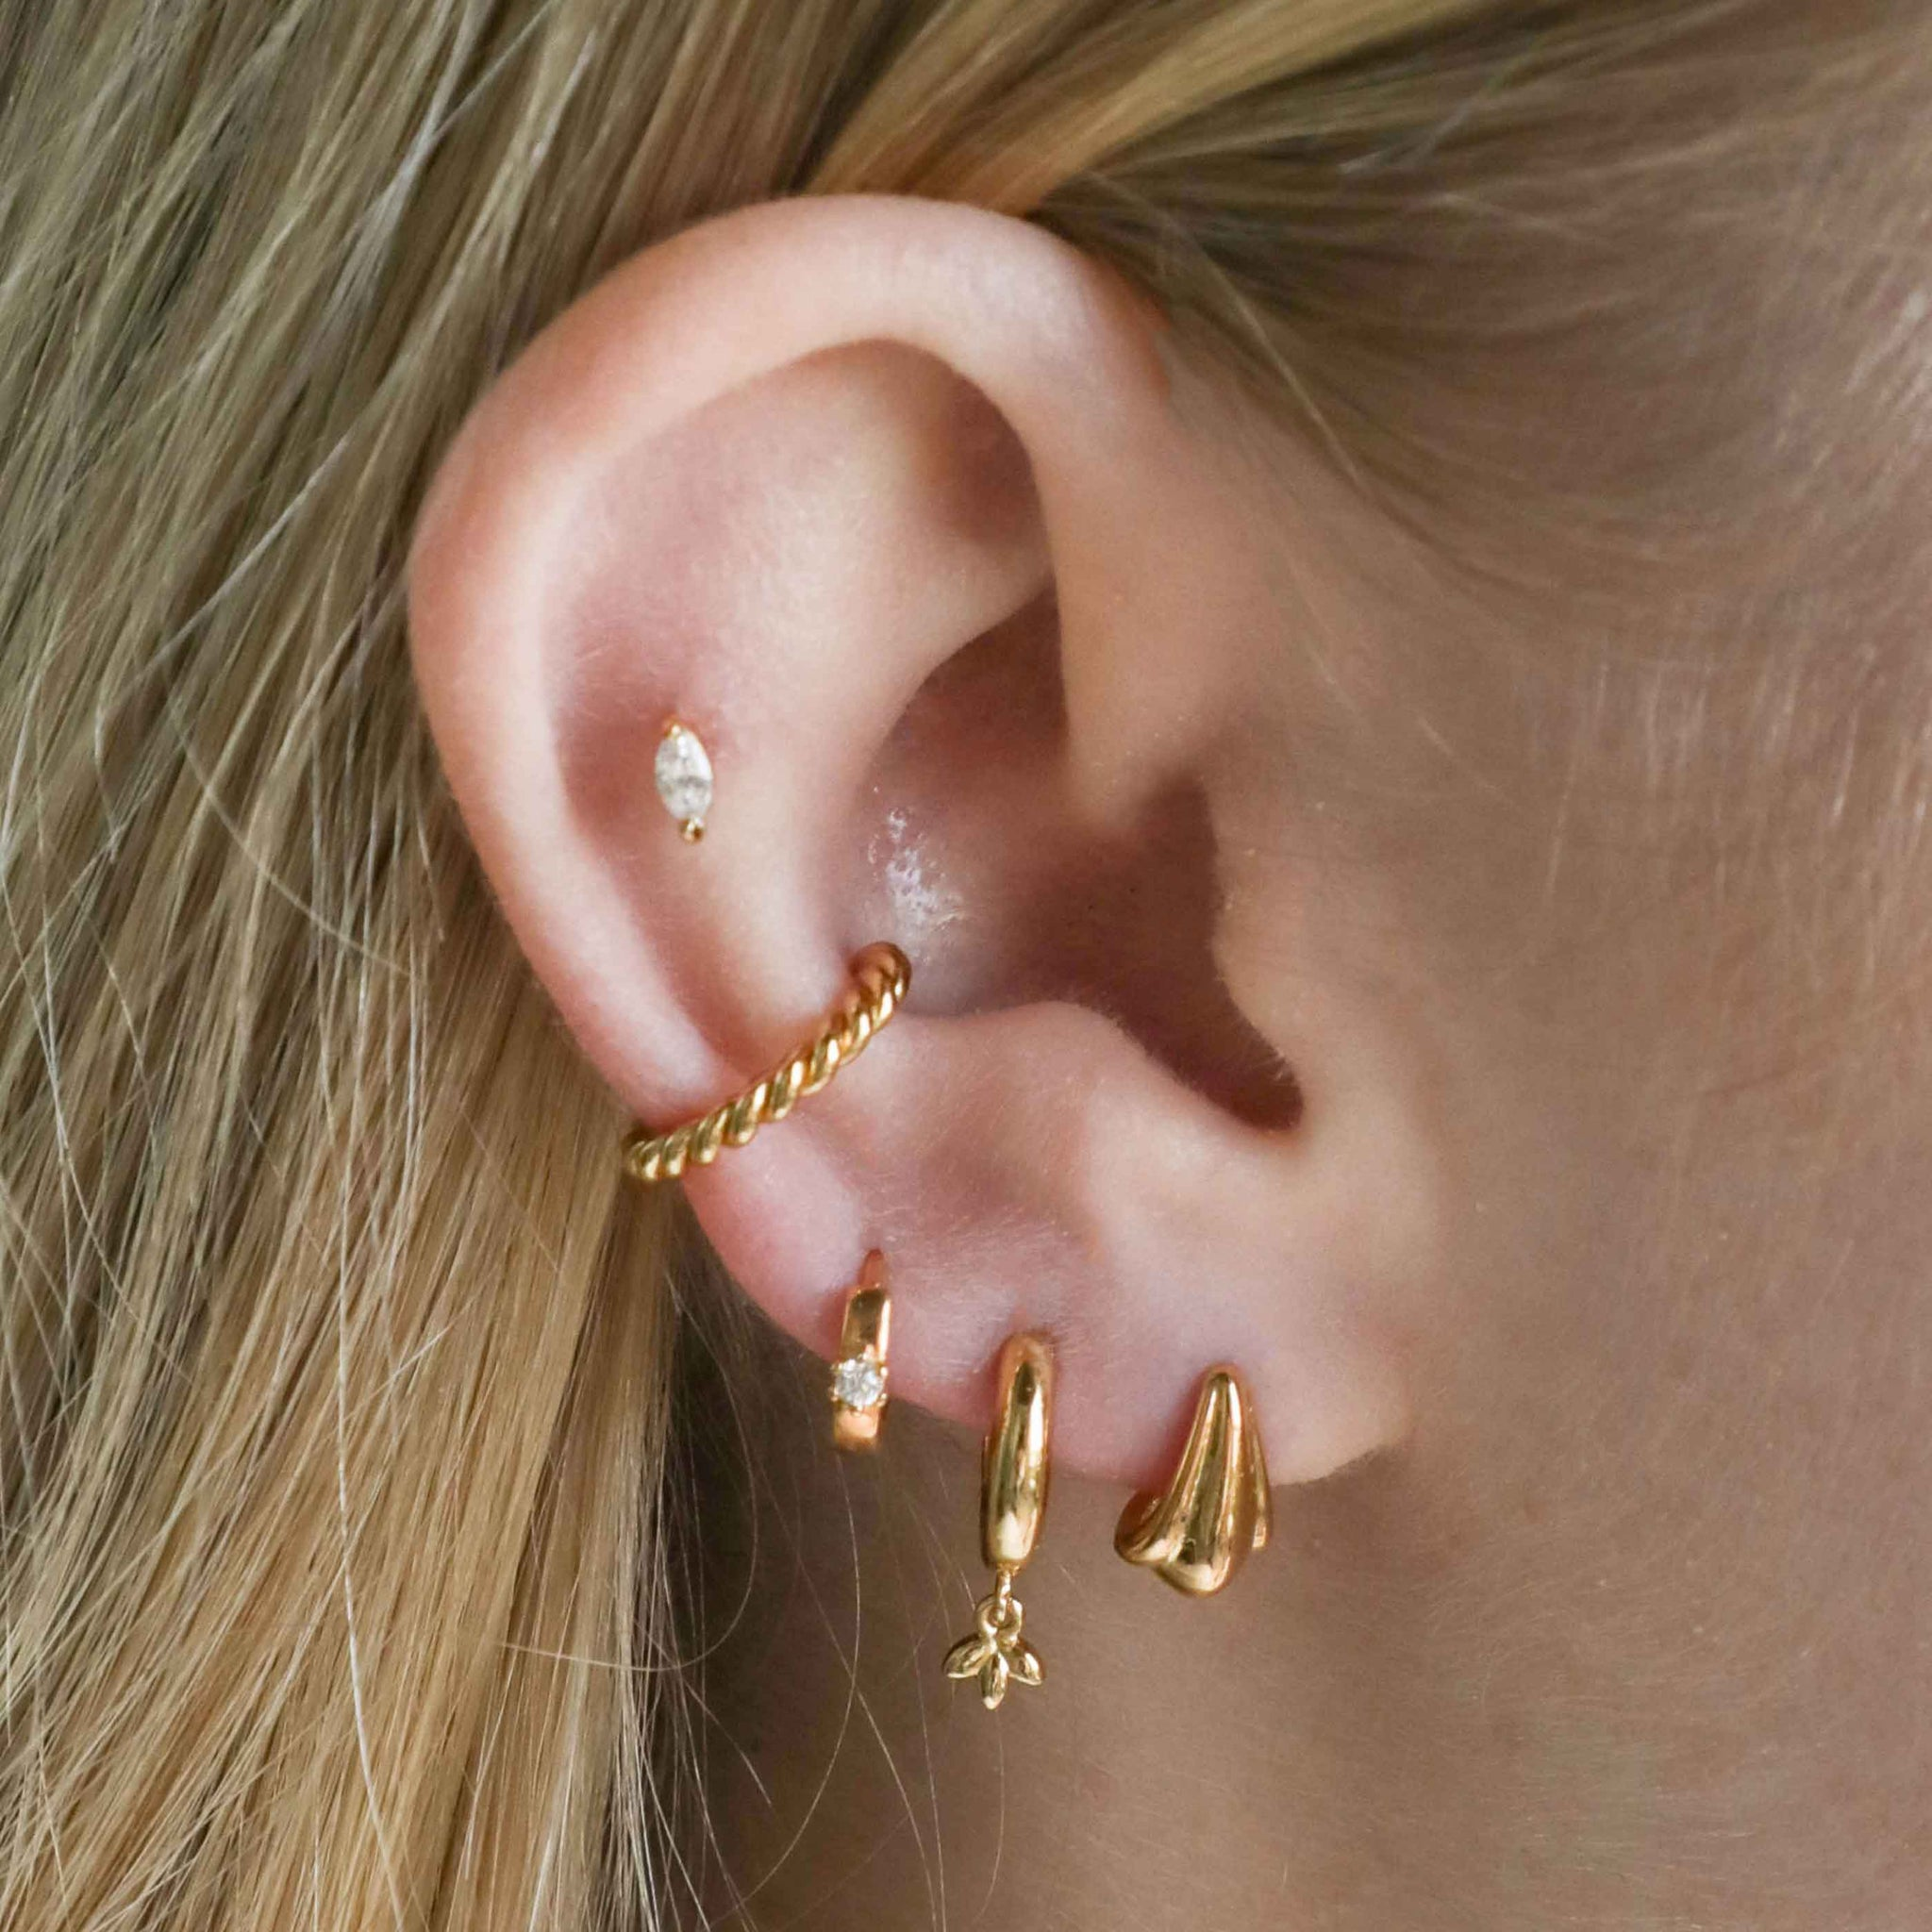 Petal Stud Earrings in Gold worn with huggies and ear cuffs